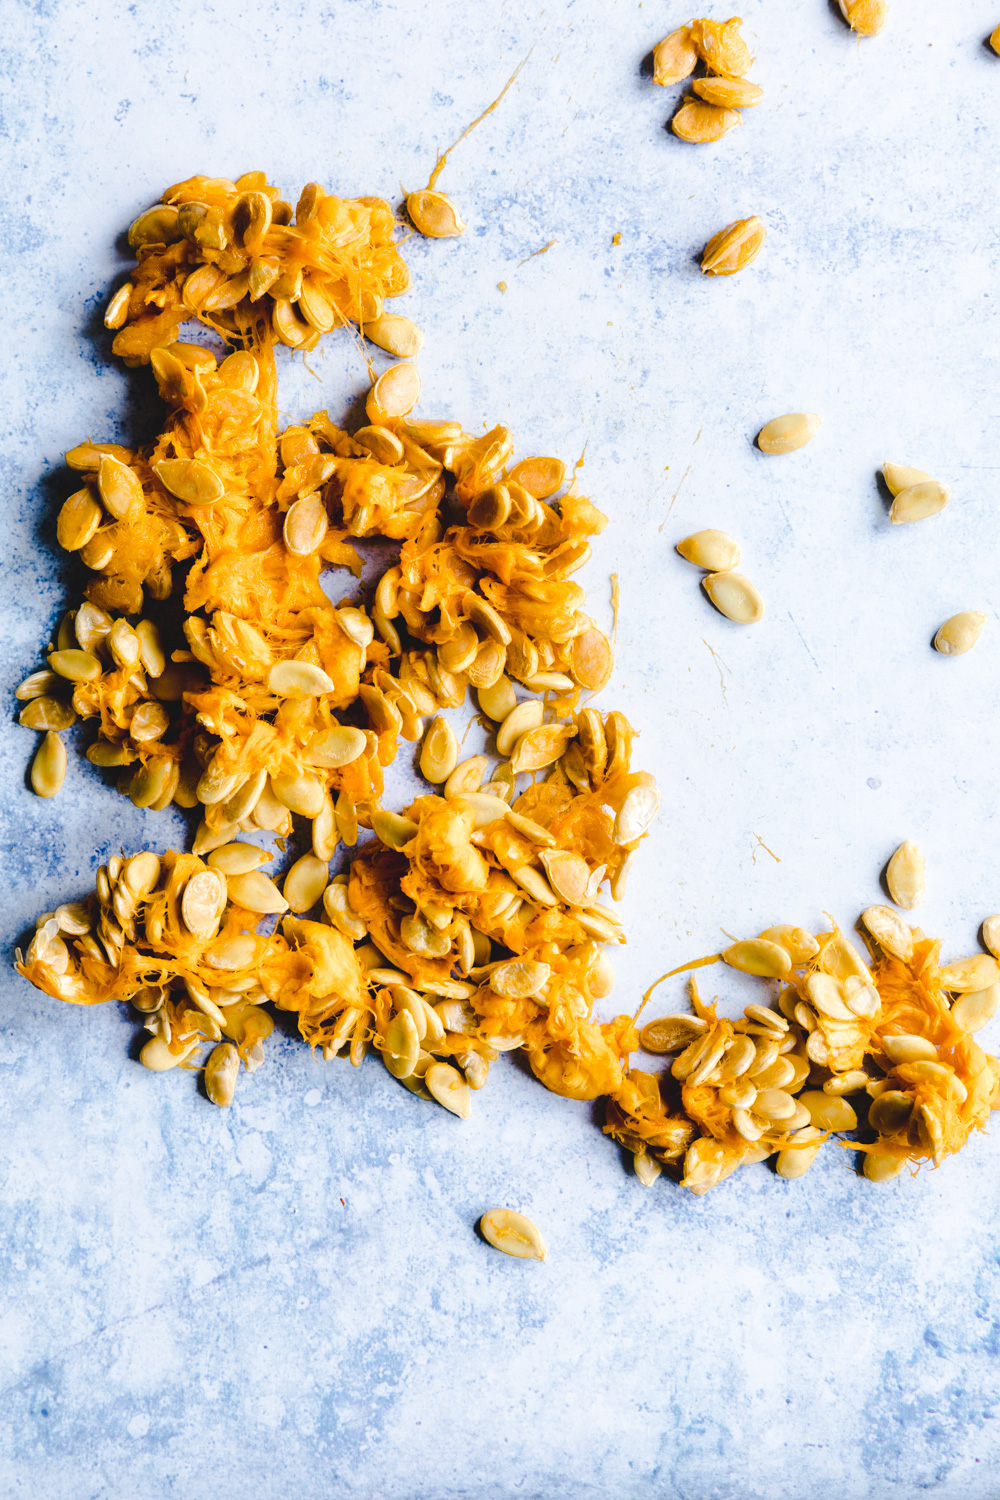 Pumpkin seeds and strings on a blue backdrop